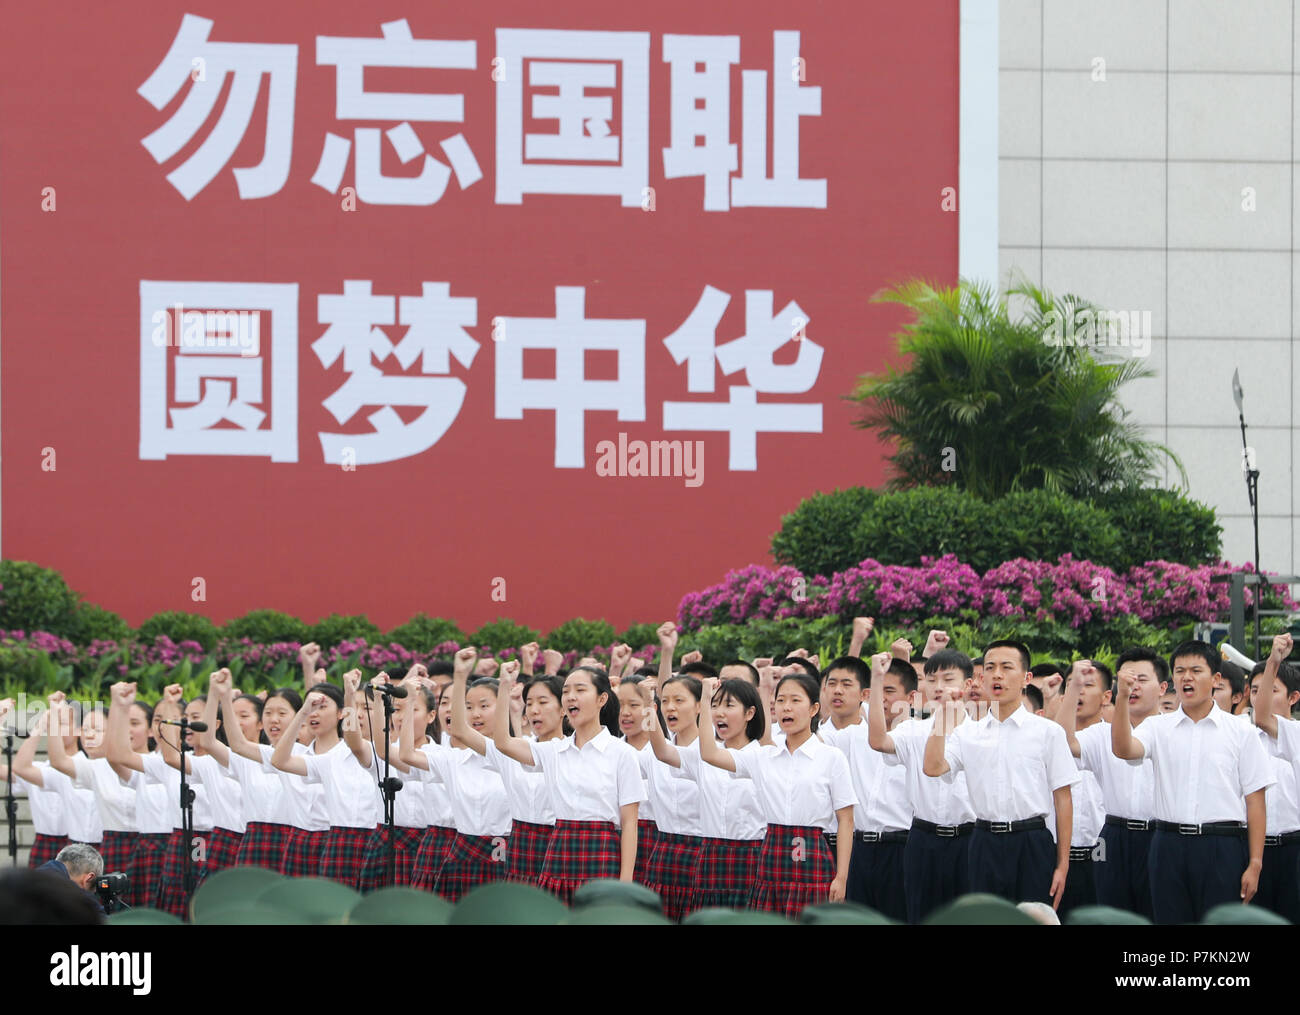 Beijing, China. 7th July, 2018. Students recite letters written by wartime heroes during a ceremony held to commemorate the 81st anniversary of the start of China's comprehensive defense against the Japanese invasion at the Museum of the Chinese People's War of Resistance against Japanese Aggression in Beijing, capital of China, July 7, 2018. Credit: Xie Huanchi/Xinhua/Alamy Live News - Stock Image